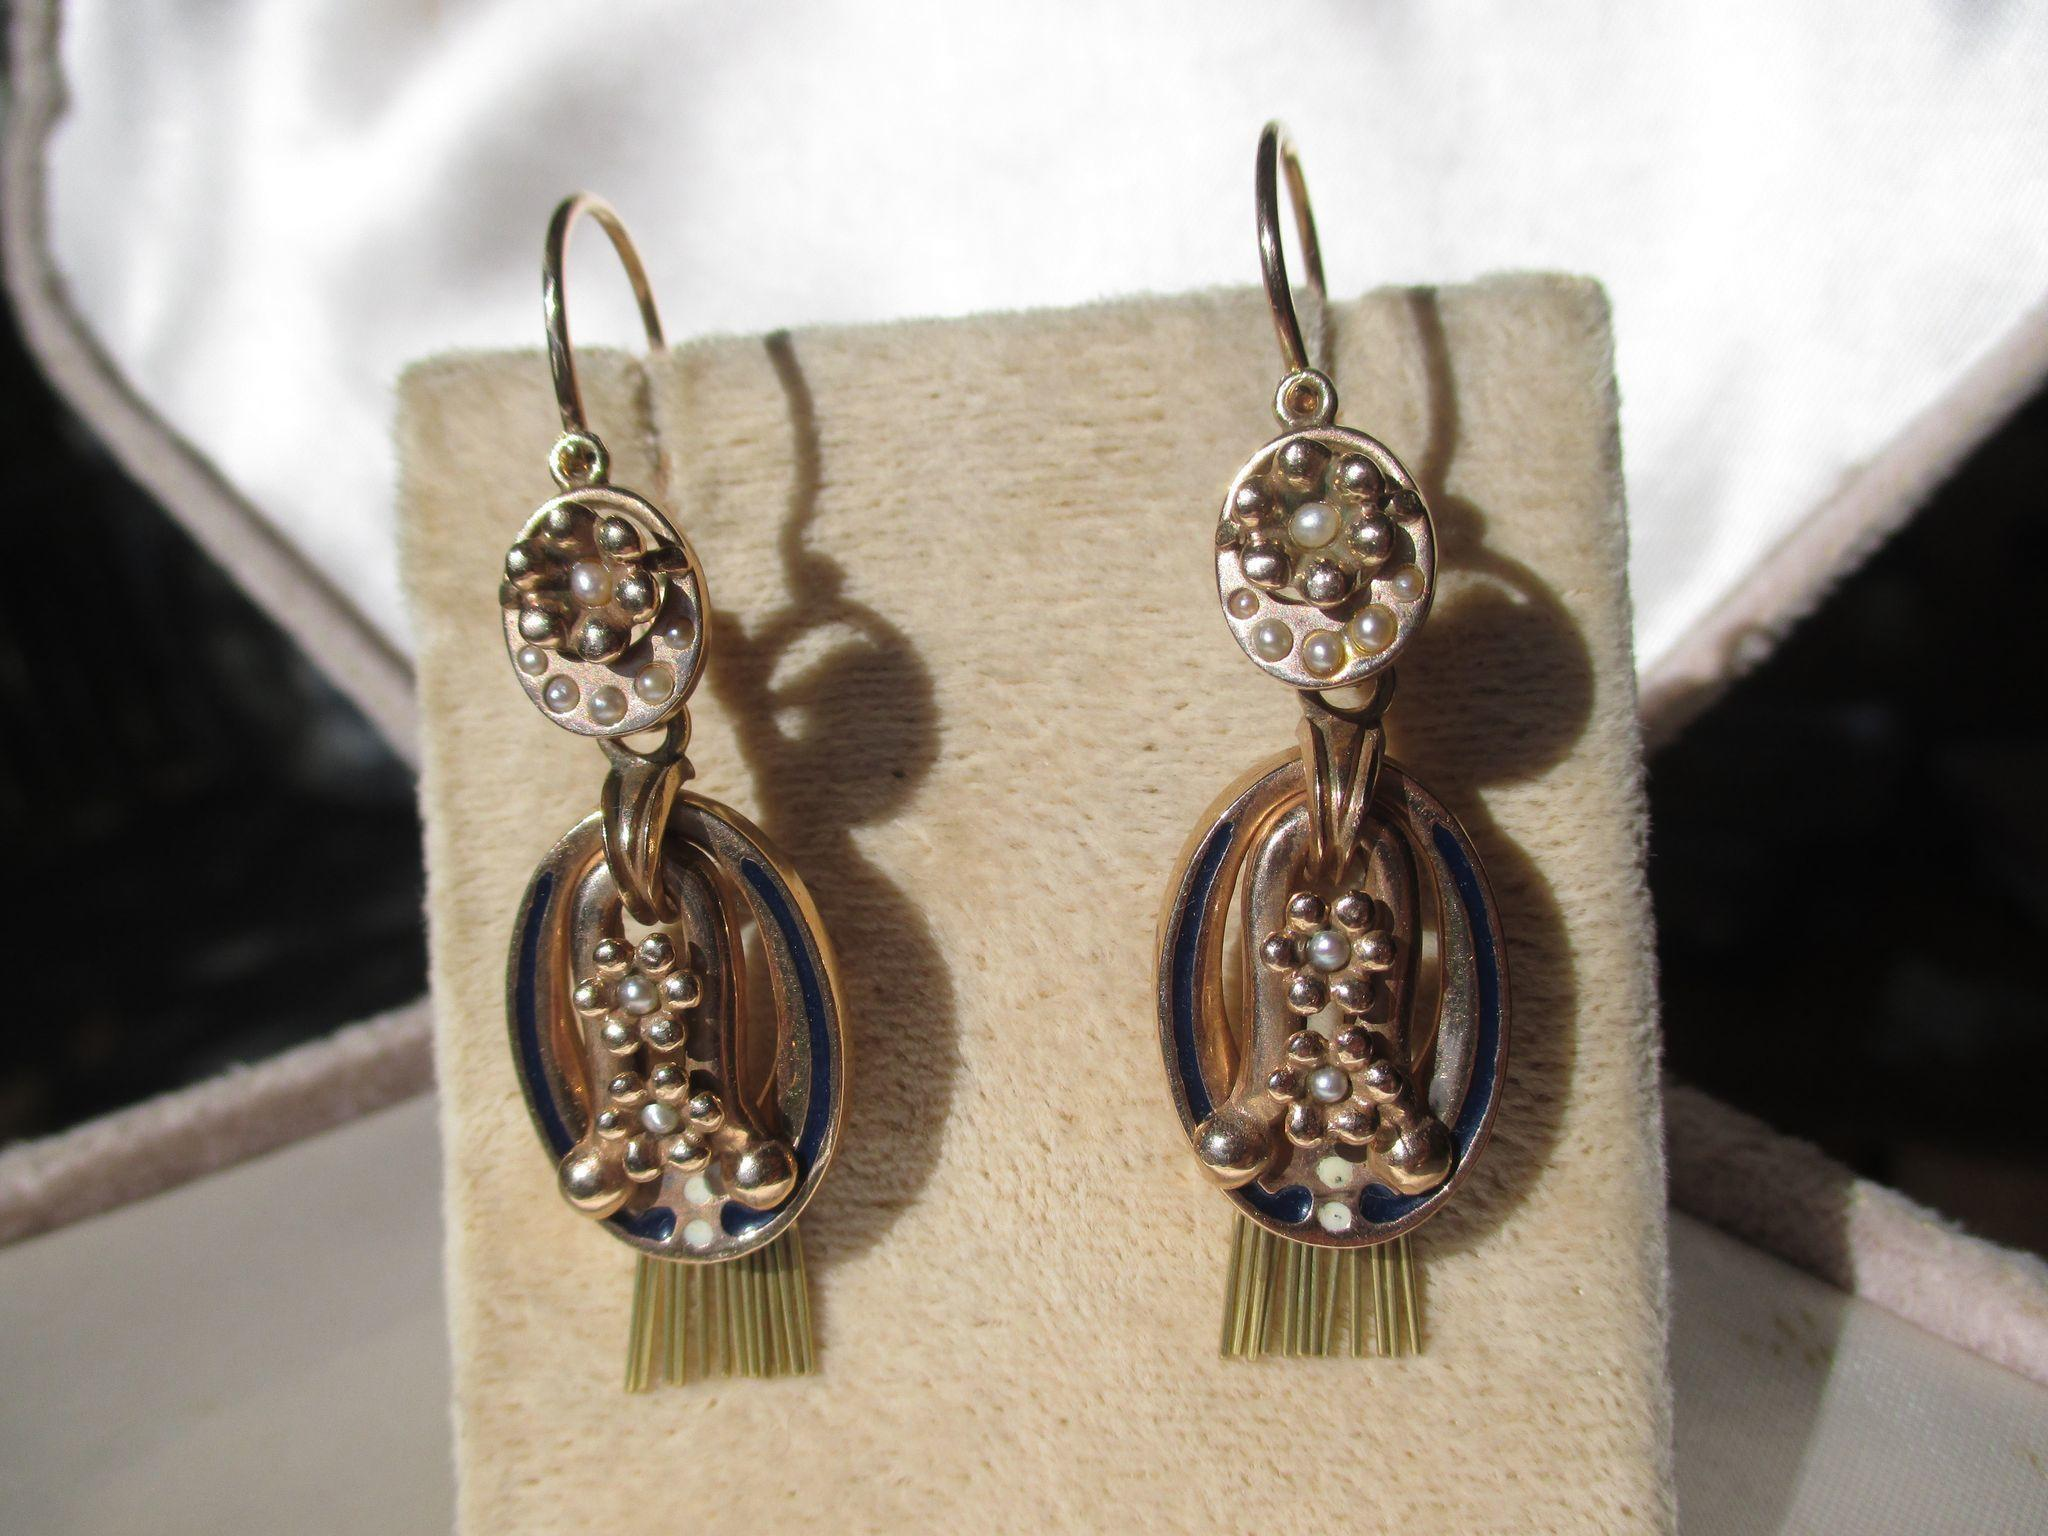 Shop Special! Antique True Day / Night Victorian Tassel Gold Pearl and Enamel Dangle Earrings